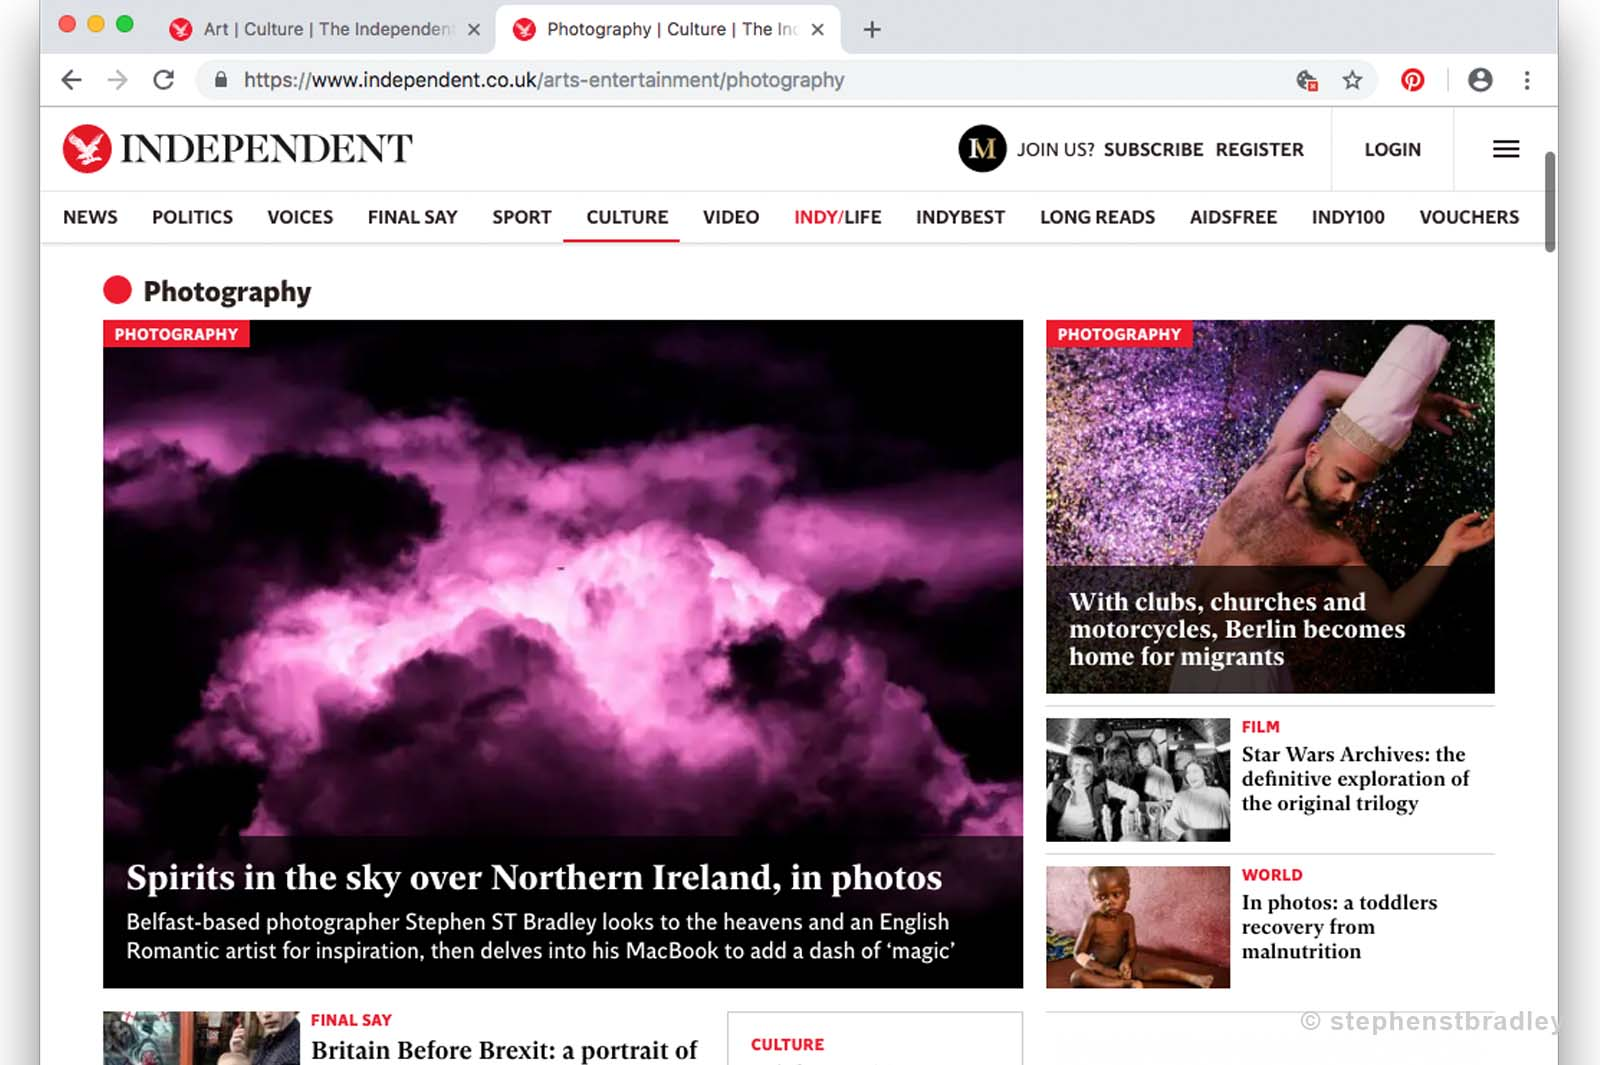 Editorial photography portfolio - photography land page of The Independent newspaper, featuring a story on the fine art photography of Stephen S T Bradley